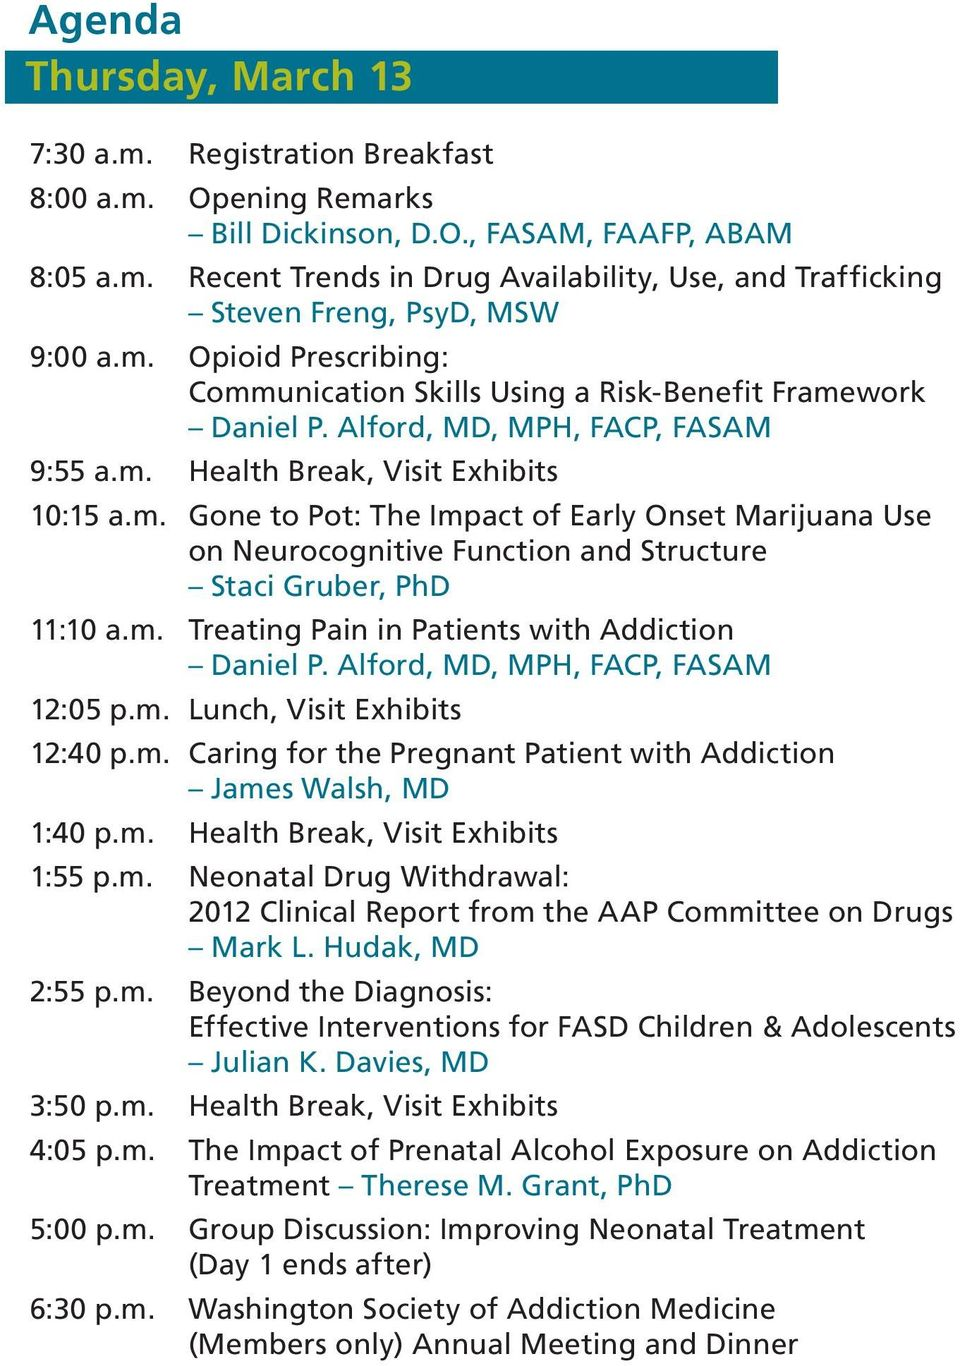 m. Treating Pain in Patients with Addiction Daniel P. Alford, MD, MPH, FACP, FASAM 12:05 p.m. Lunch, Visit Exhibits 12:40 p.m. Caring for the Pregnant Patient with Addiction James Walsh, MD 1:40 p.m. Health Break, Visit Exhibits 1:55 p.